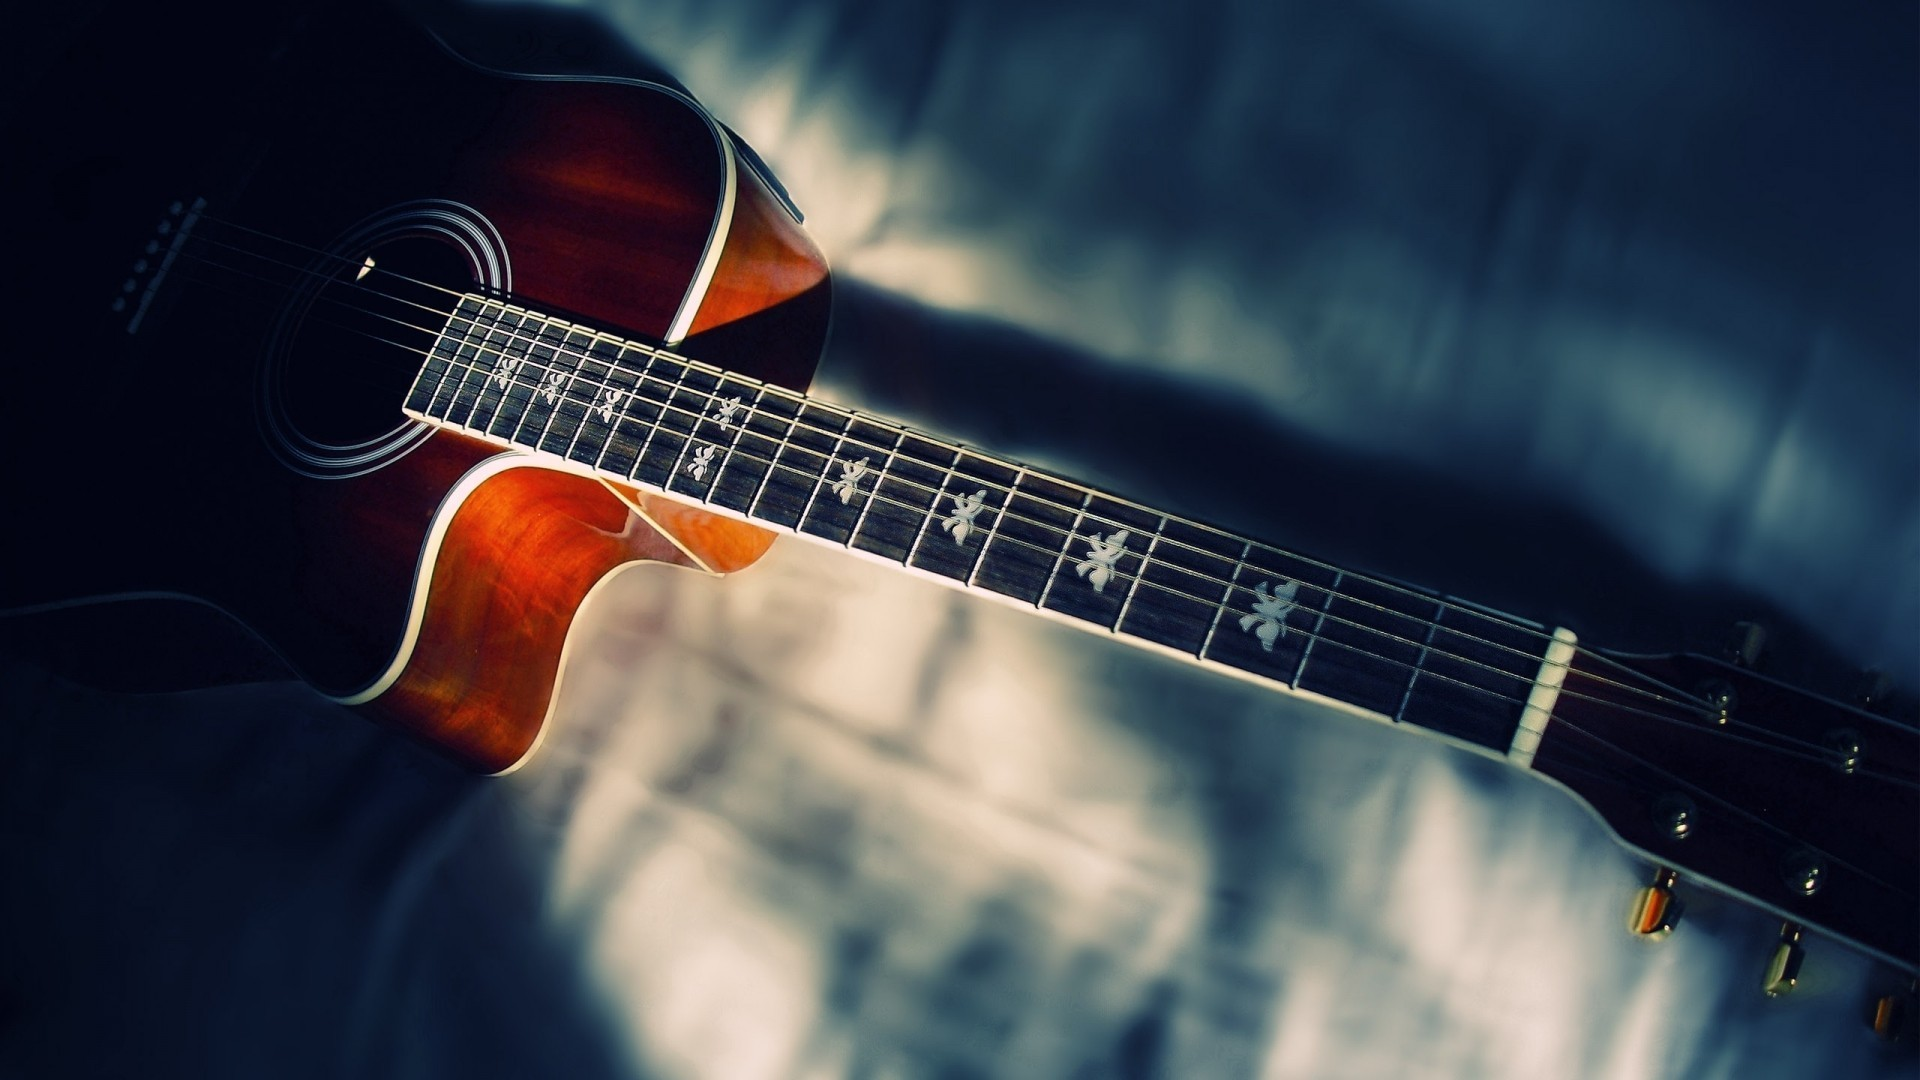 1920x1080  Acoustic Guitar Wallpaper - Wallpaper, High Definition, High  Quality .